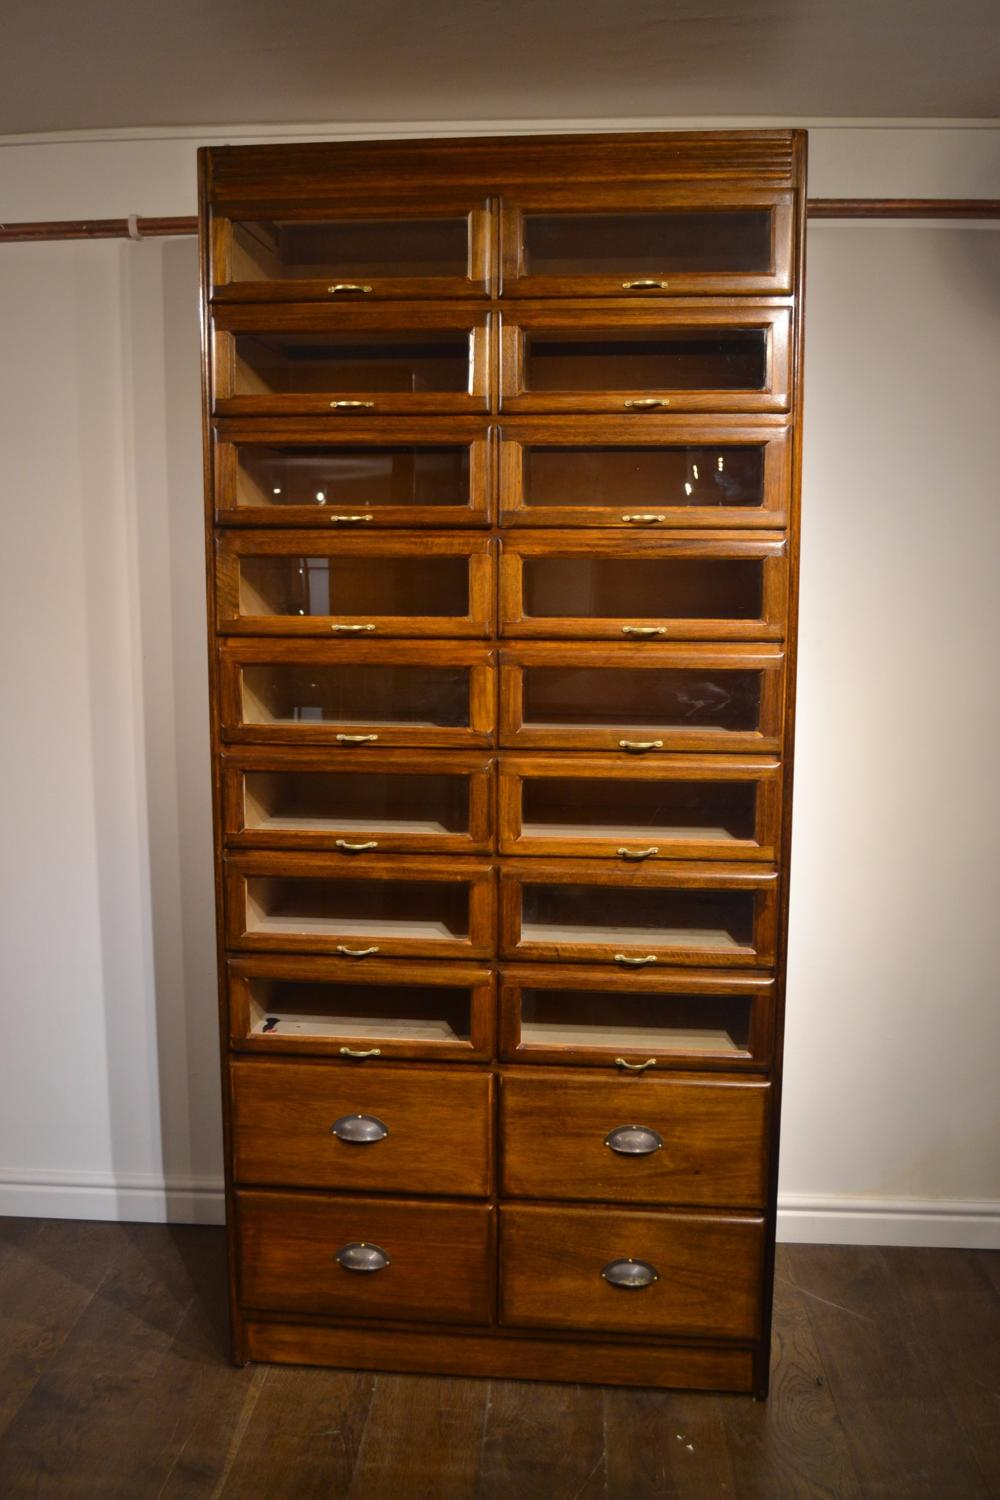 1940s Drapers Haberdashery Shop Display Drawers